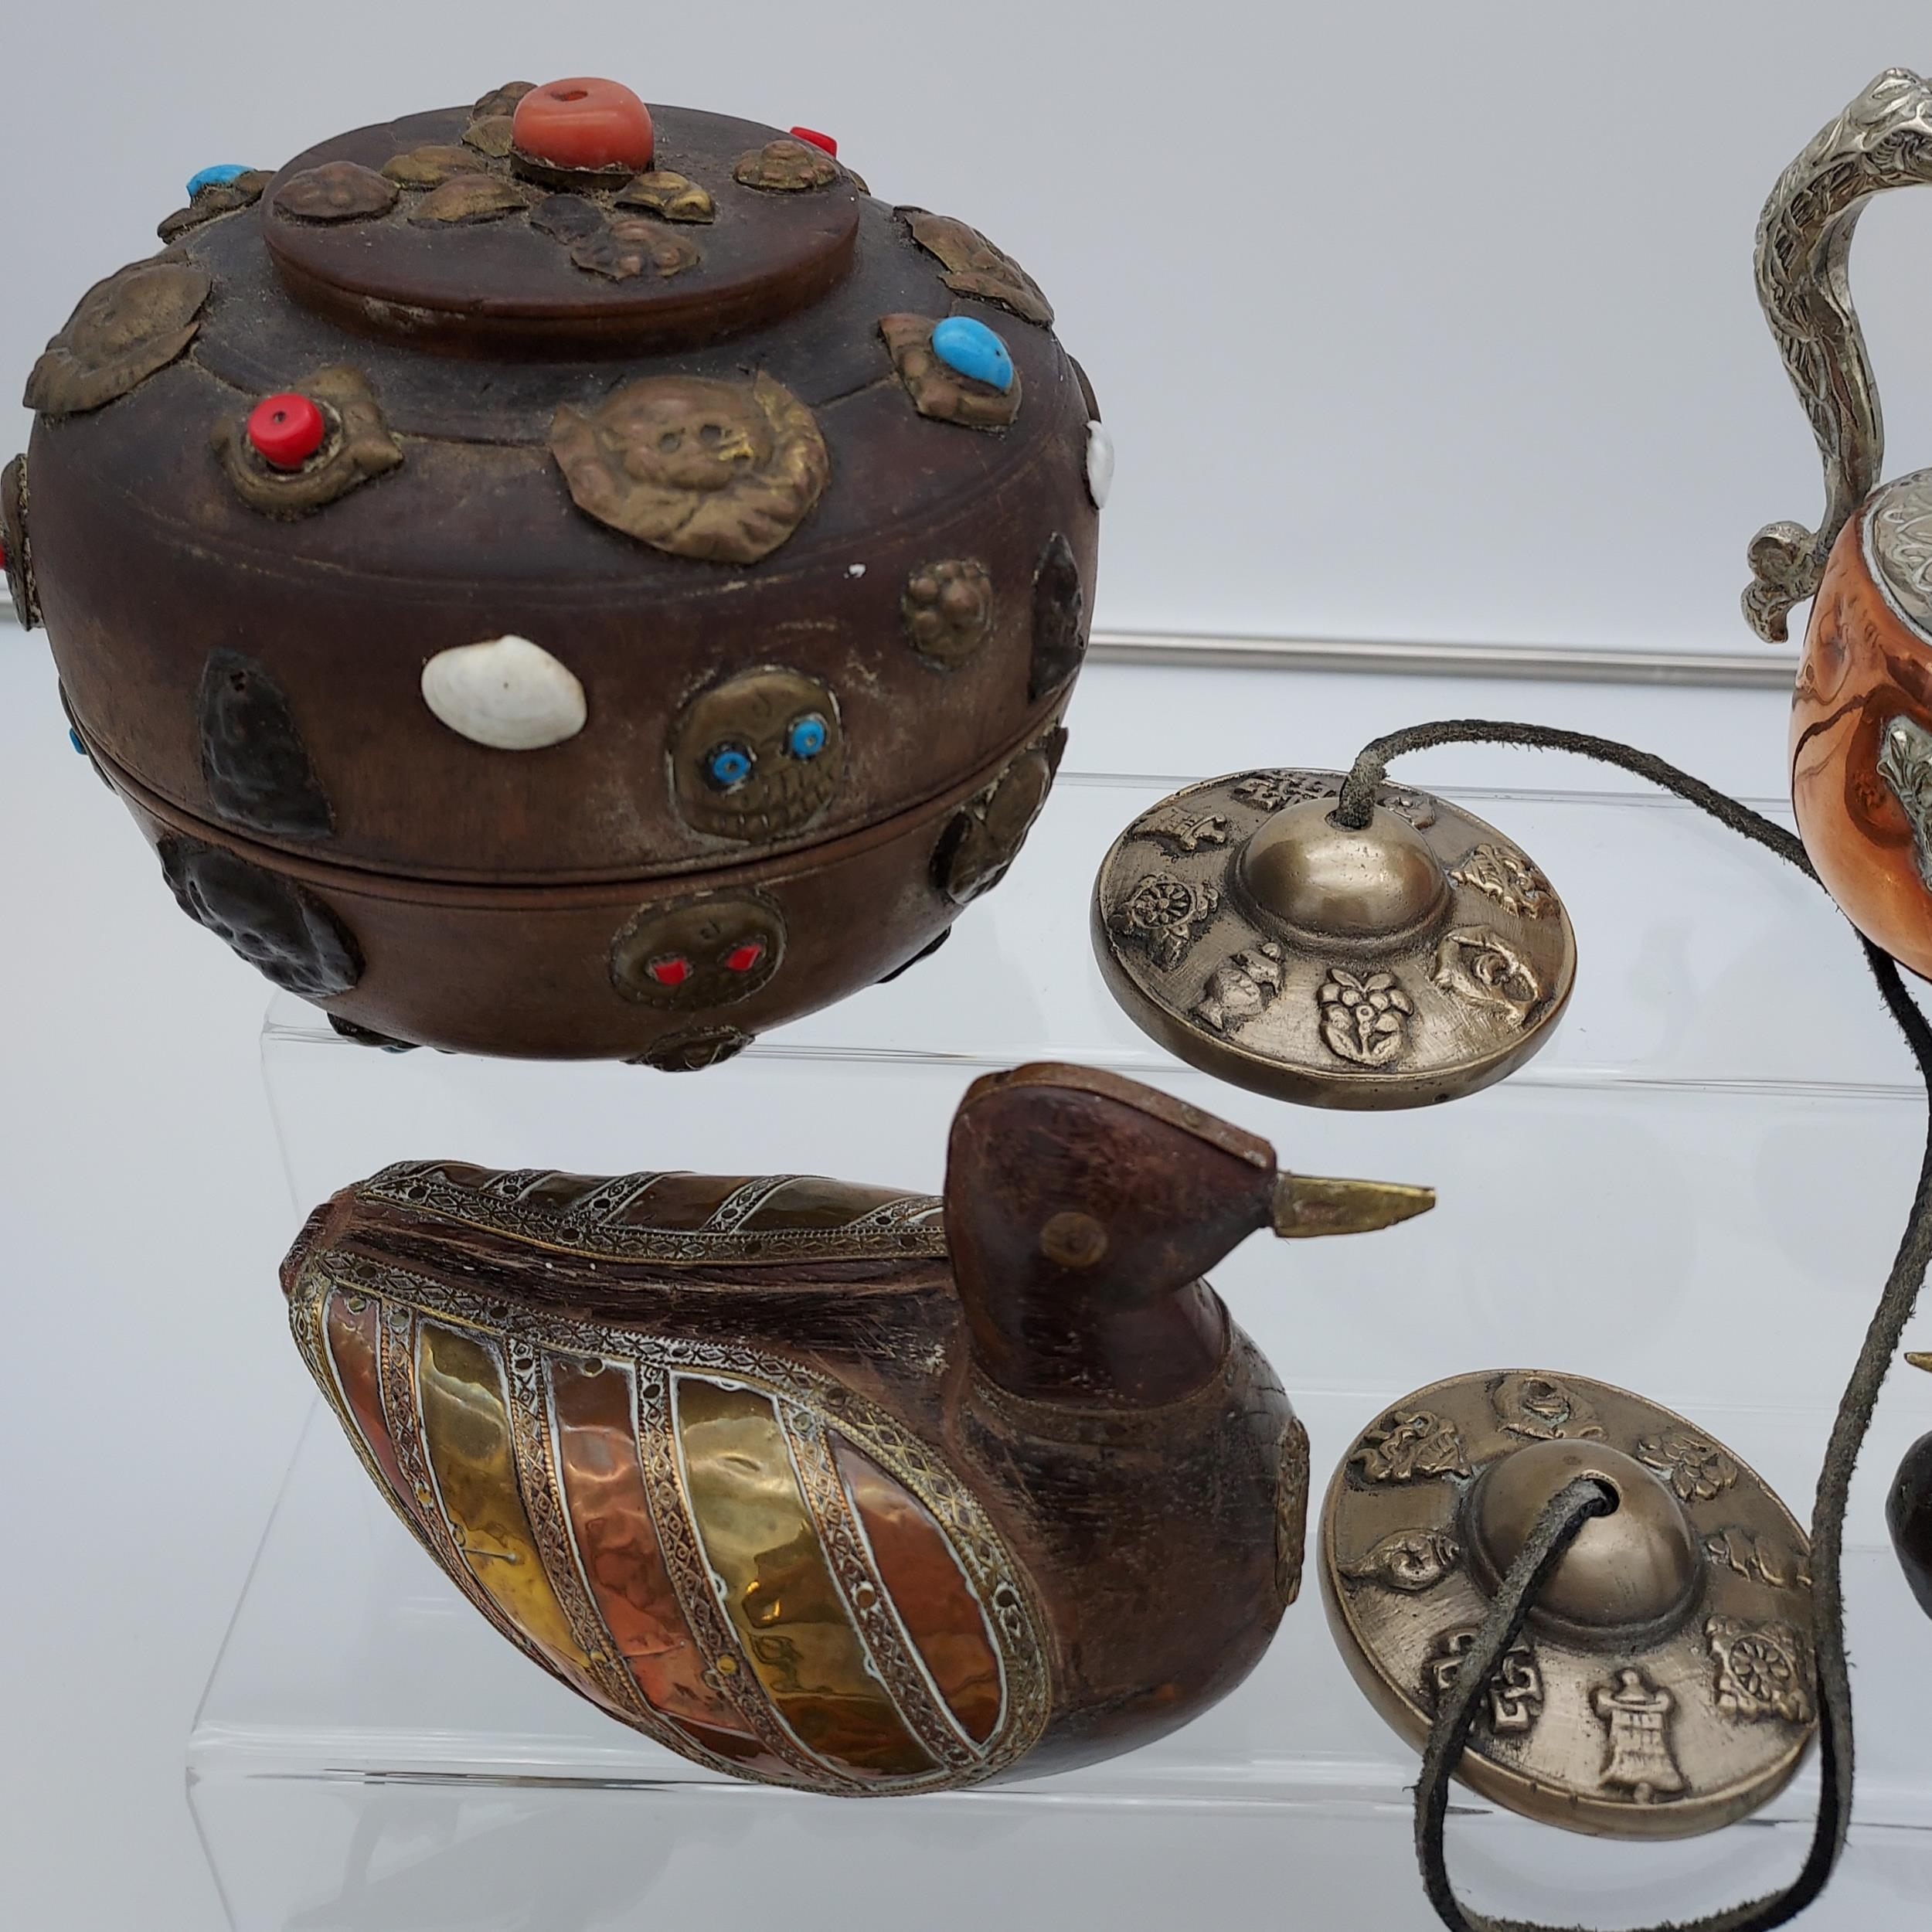 A collection of Tibetan antiques to include silver and copper teapot, prayer wheel, meditation chime - Image 3 of 6